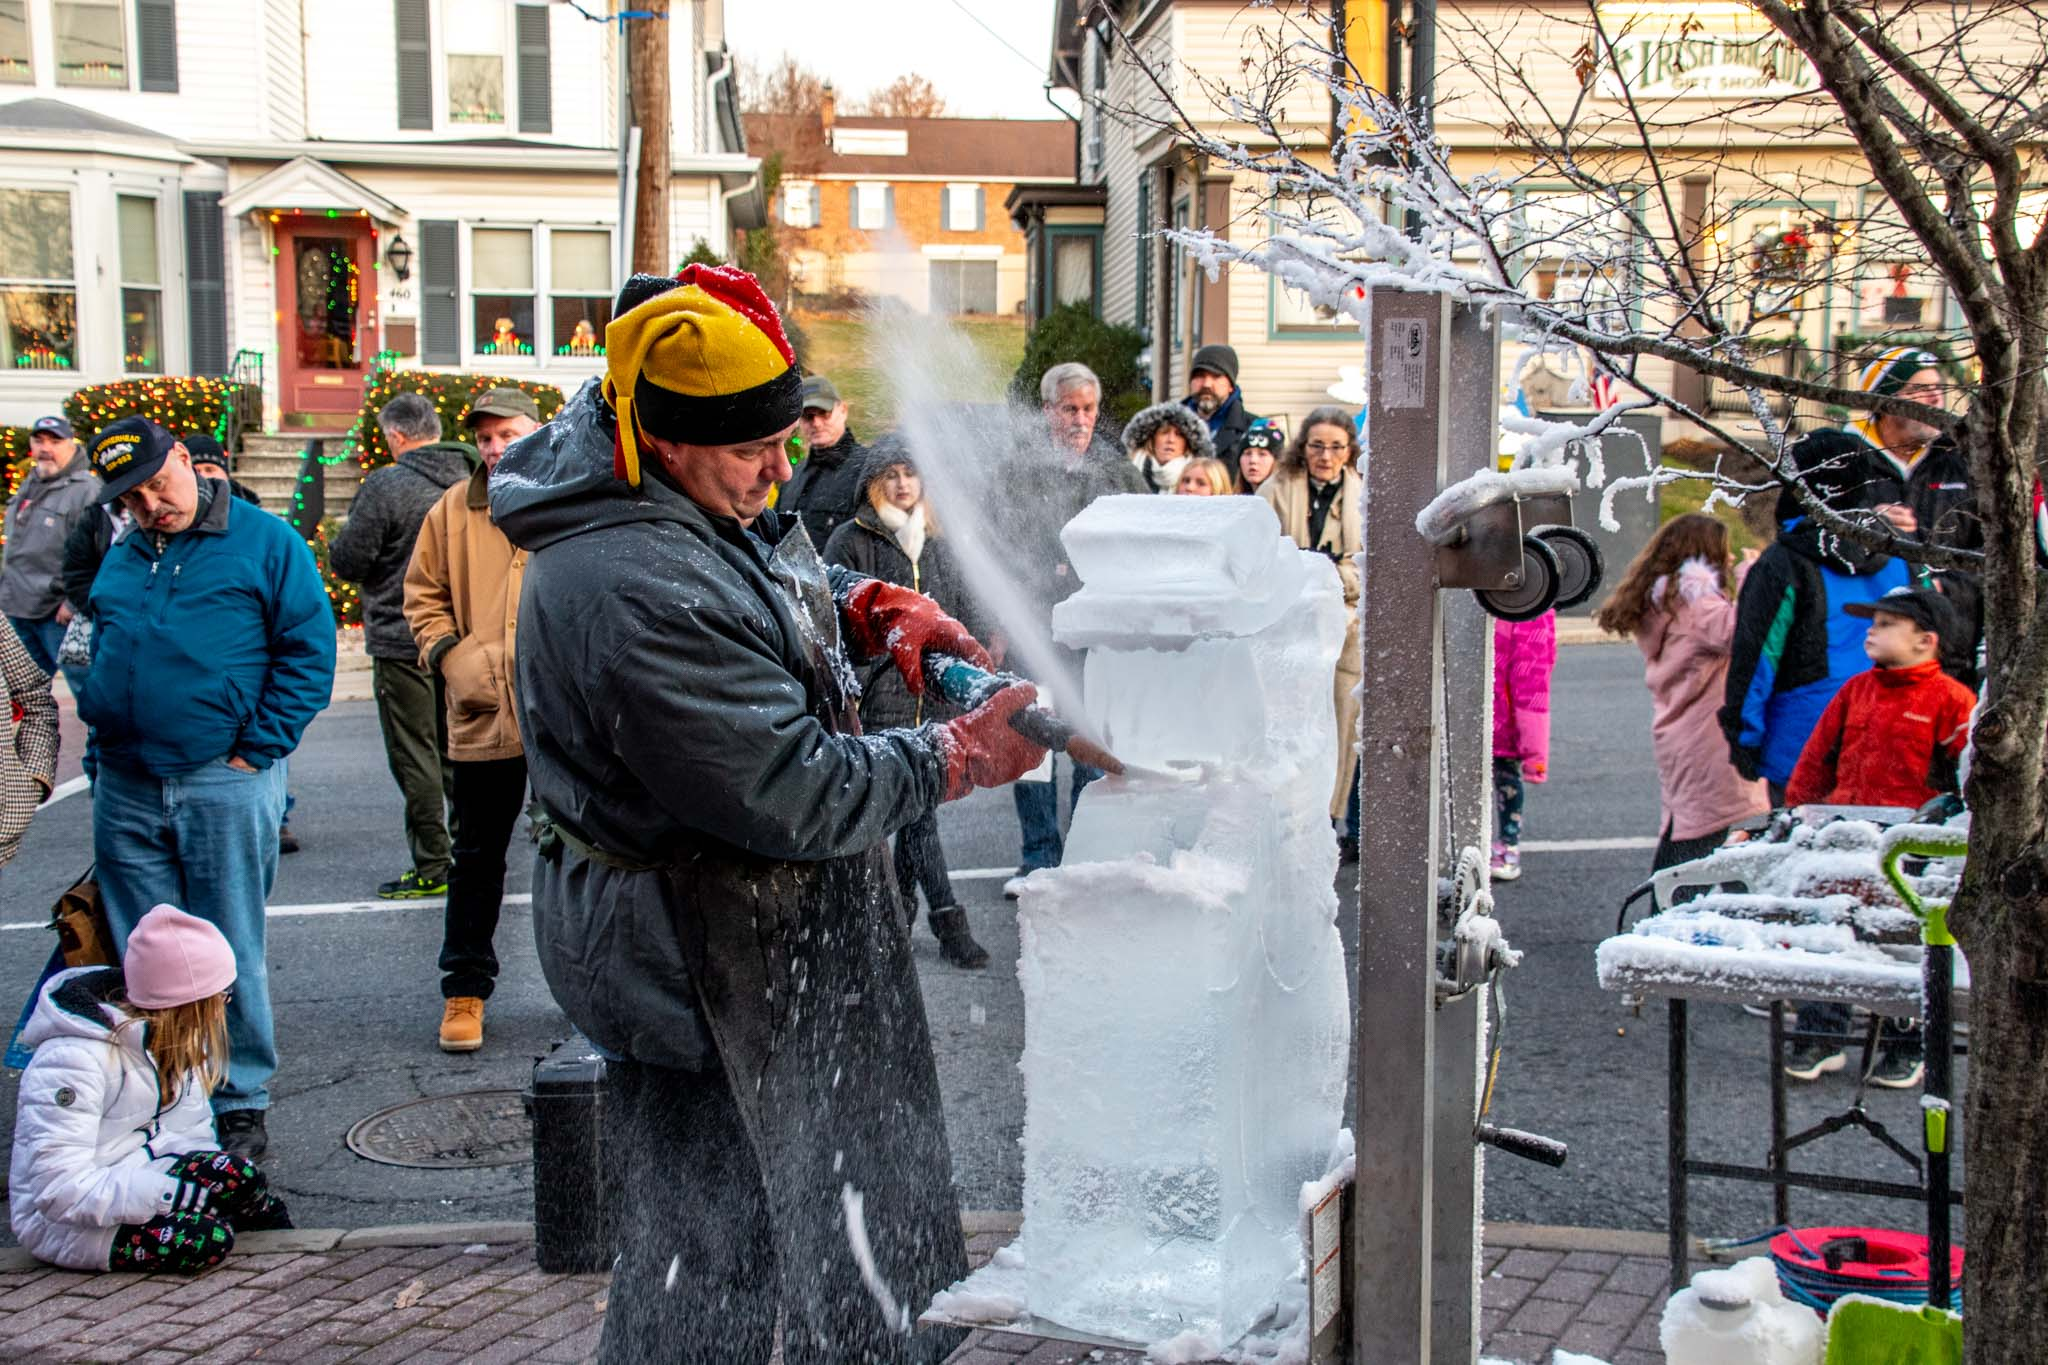 Man carving ice block into a snowman on the streets of Gettysburg